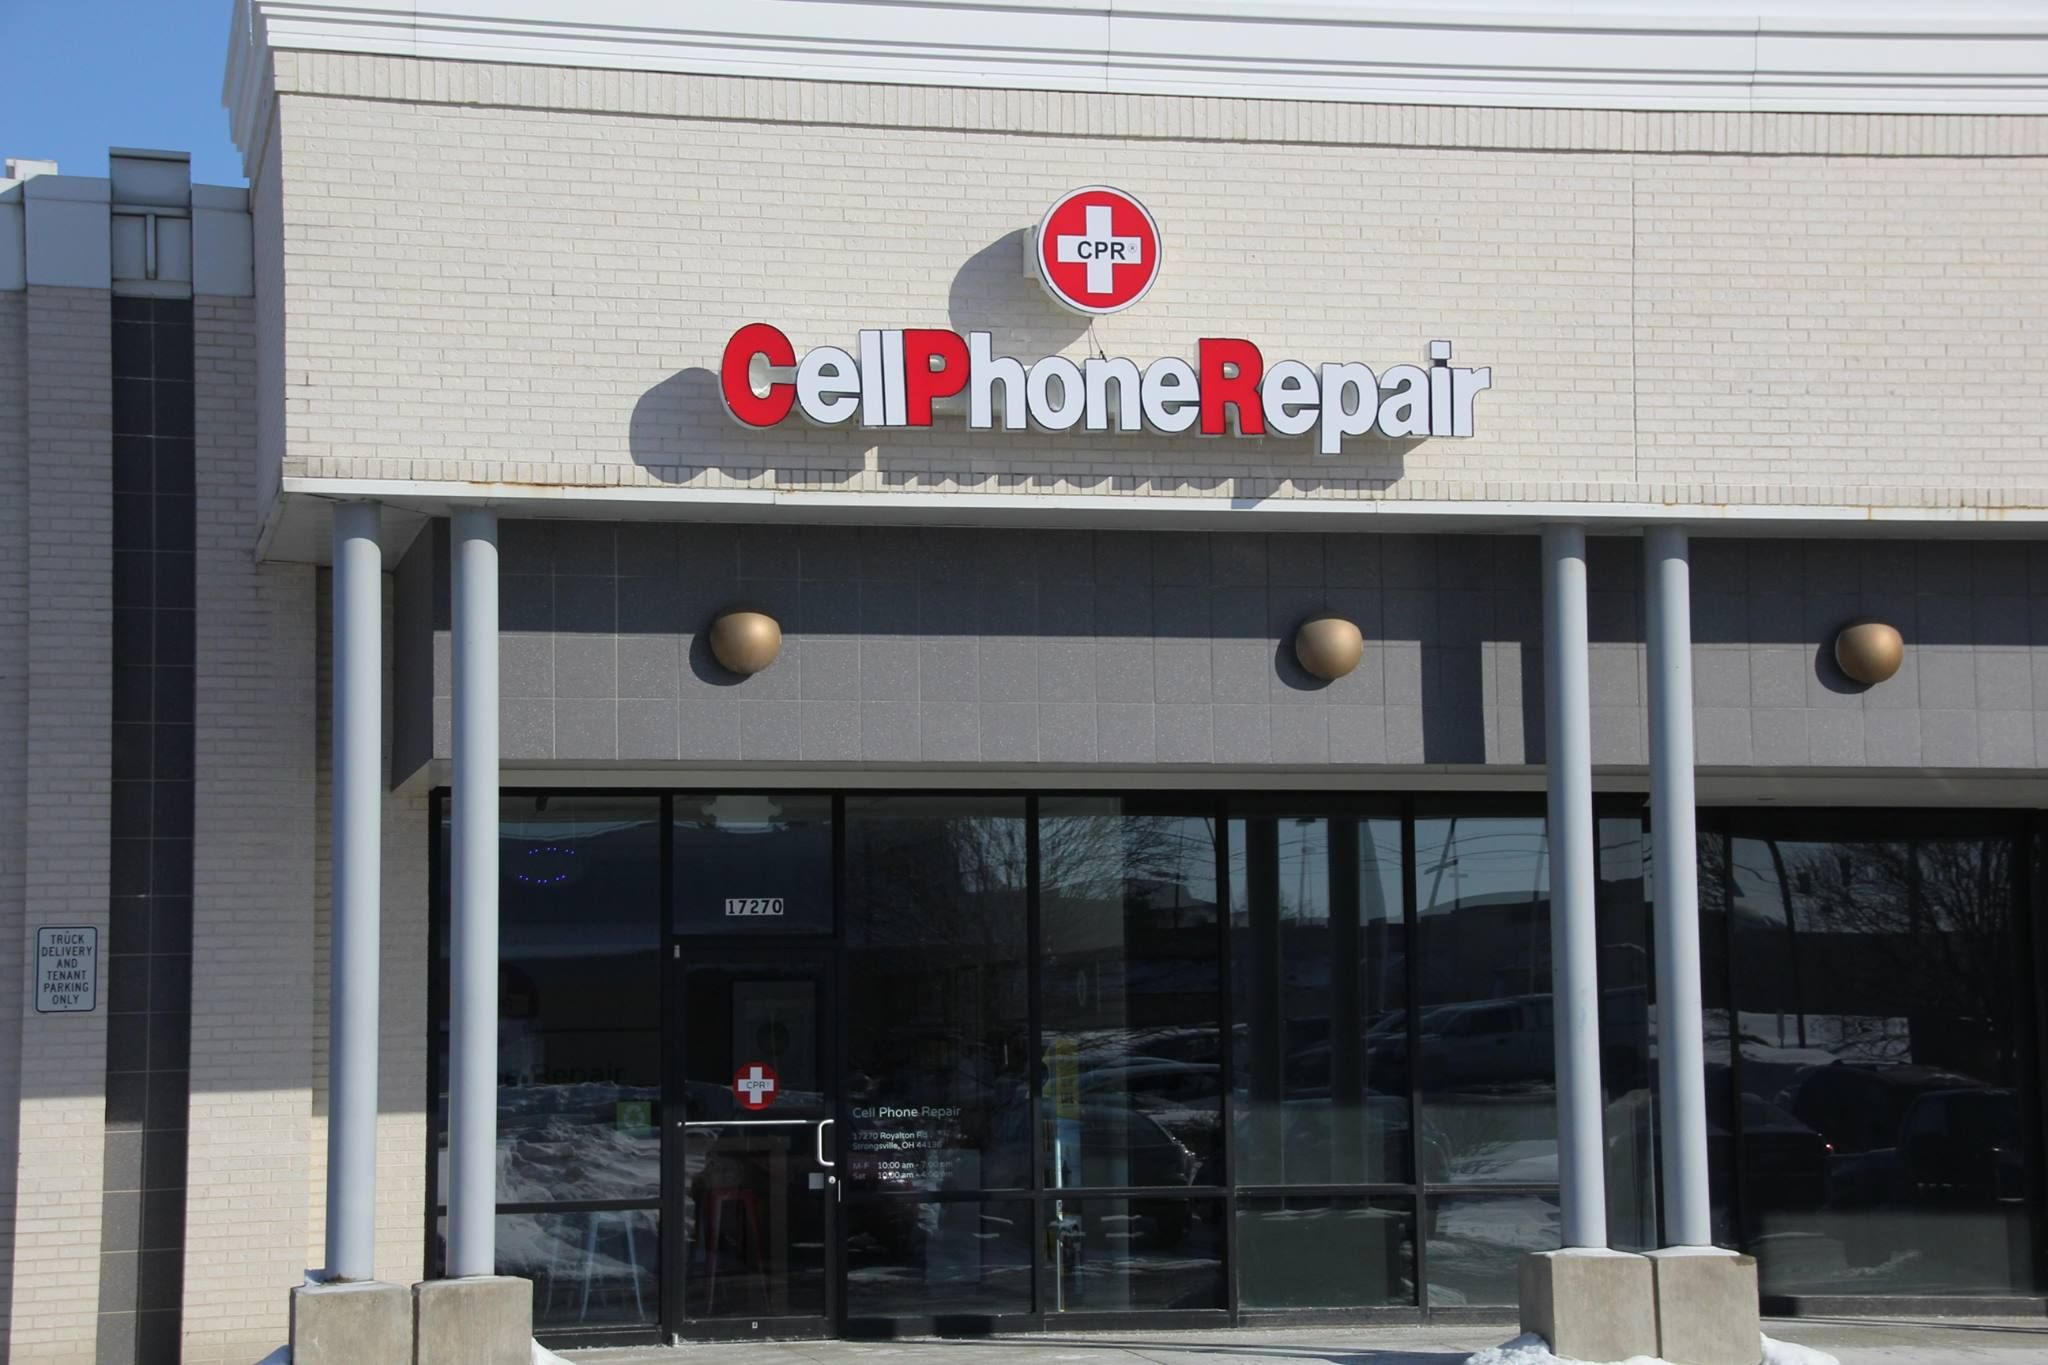 CPR Cell Phone Repair Strongsville, OH | Visit CPR Strongsville for